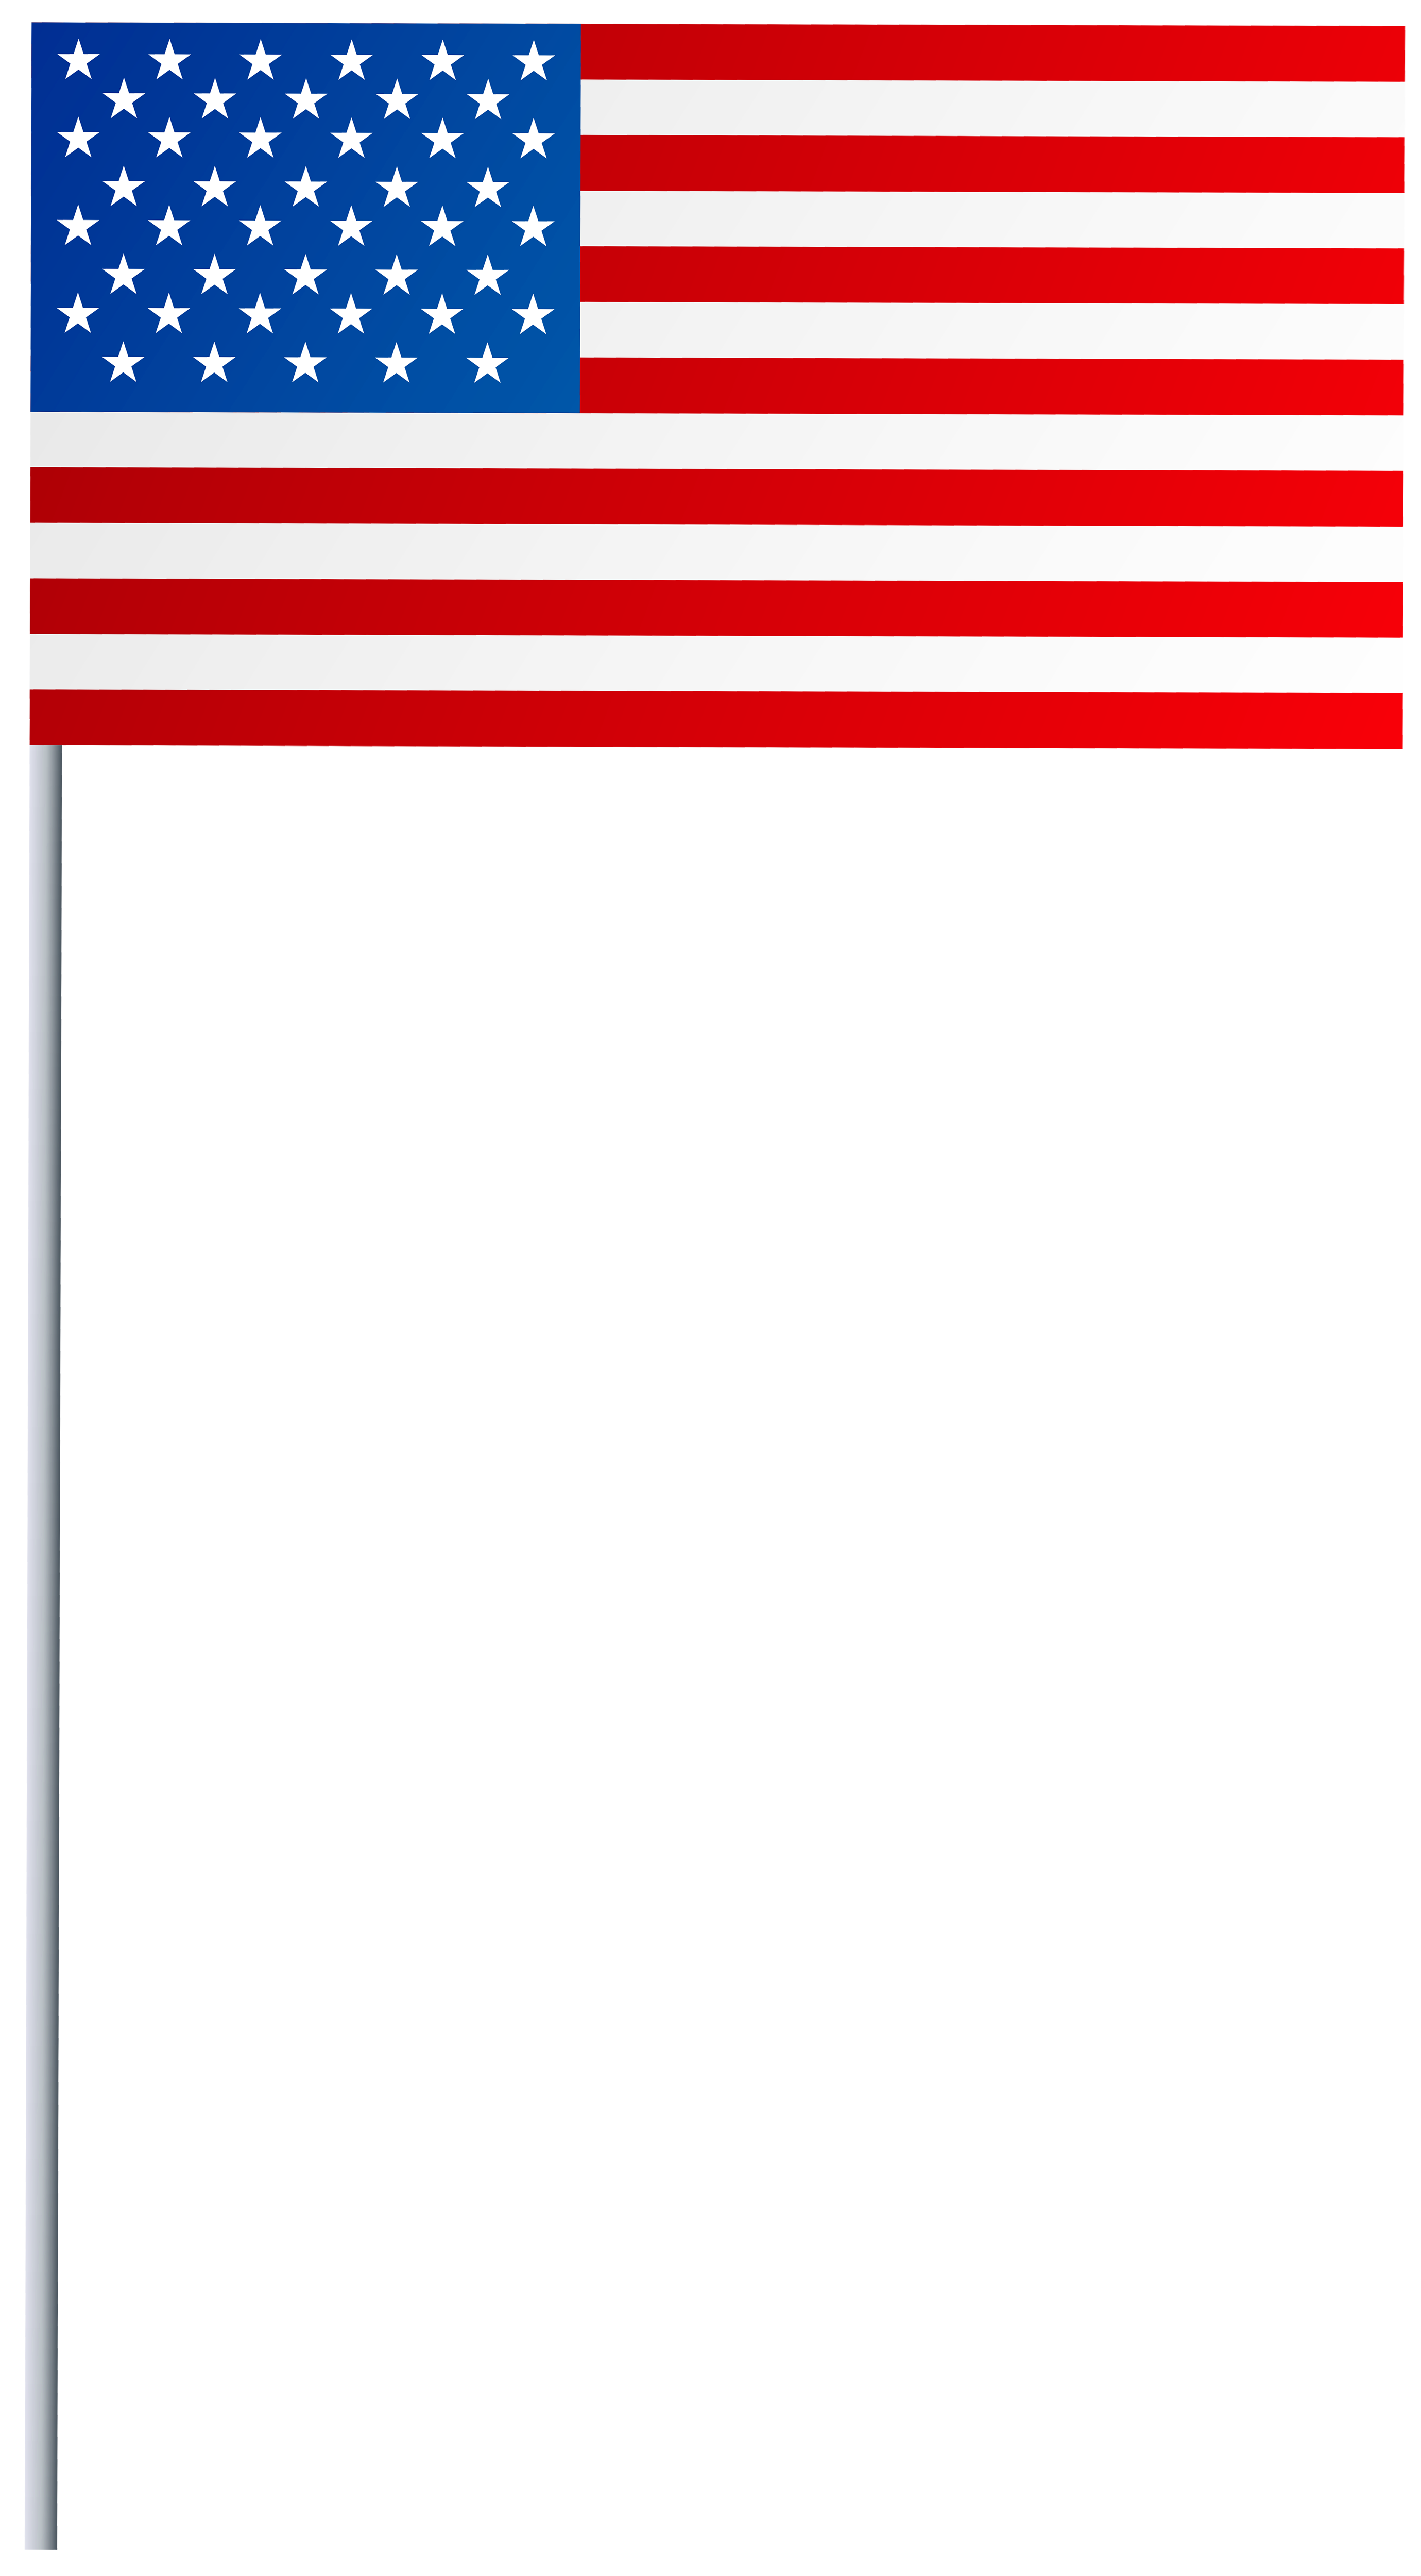 Flag png image gallery. Usa clipart flagclipart